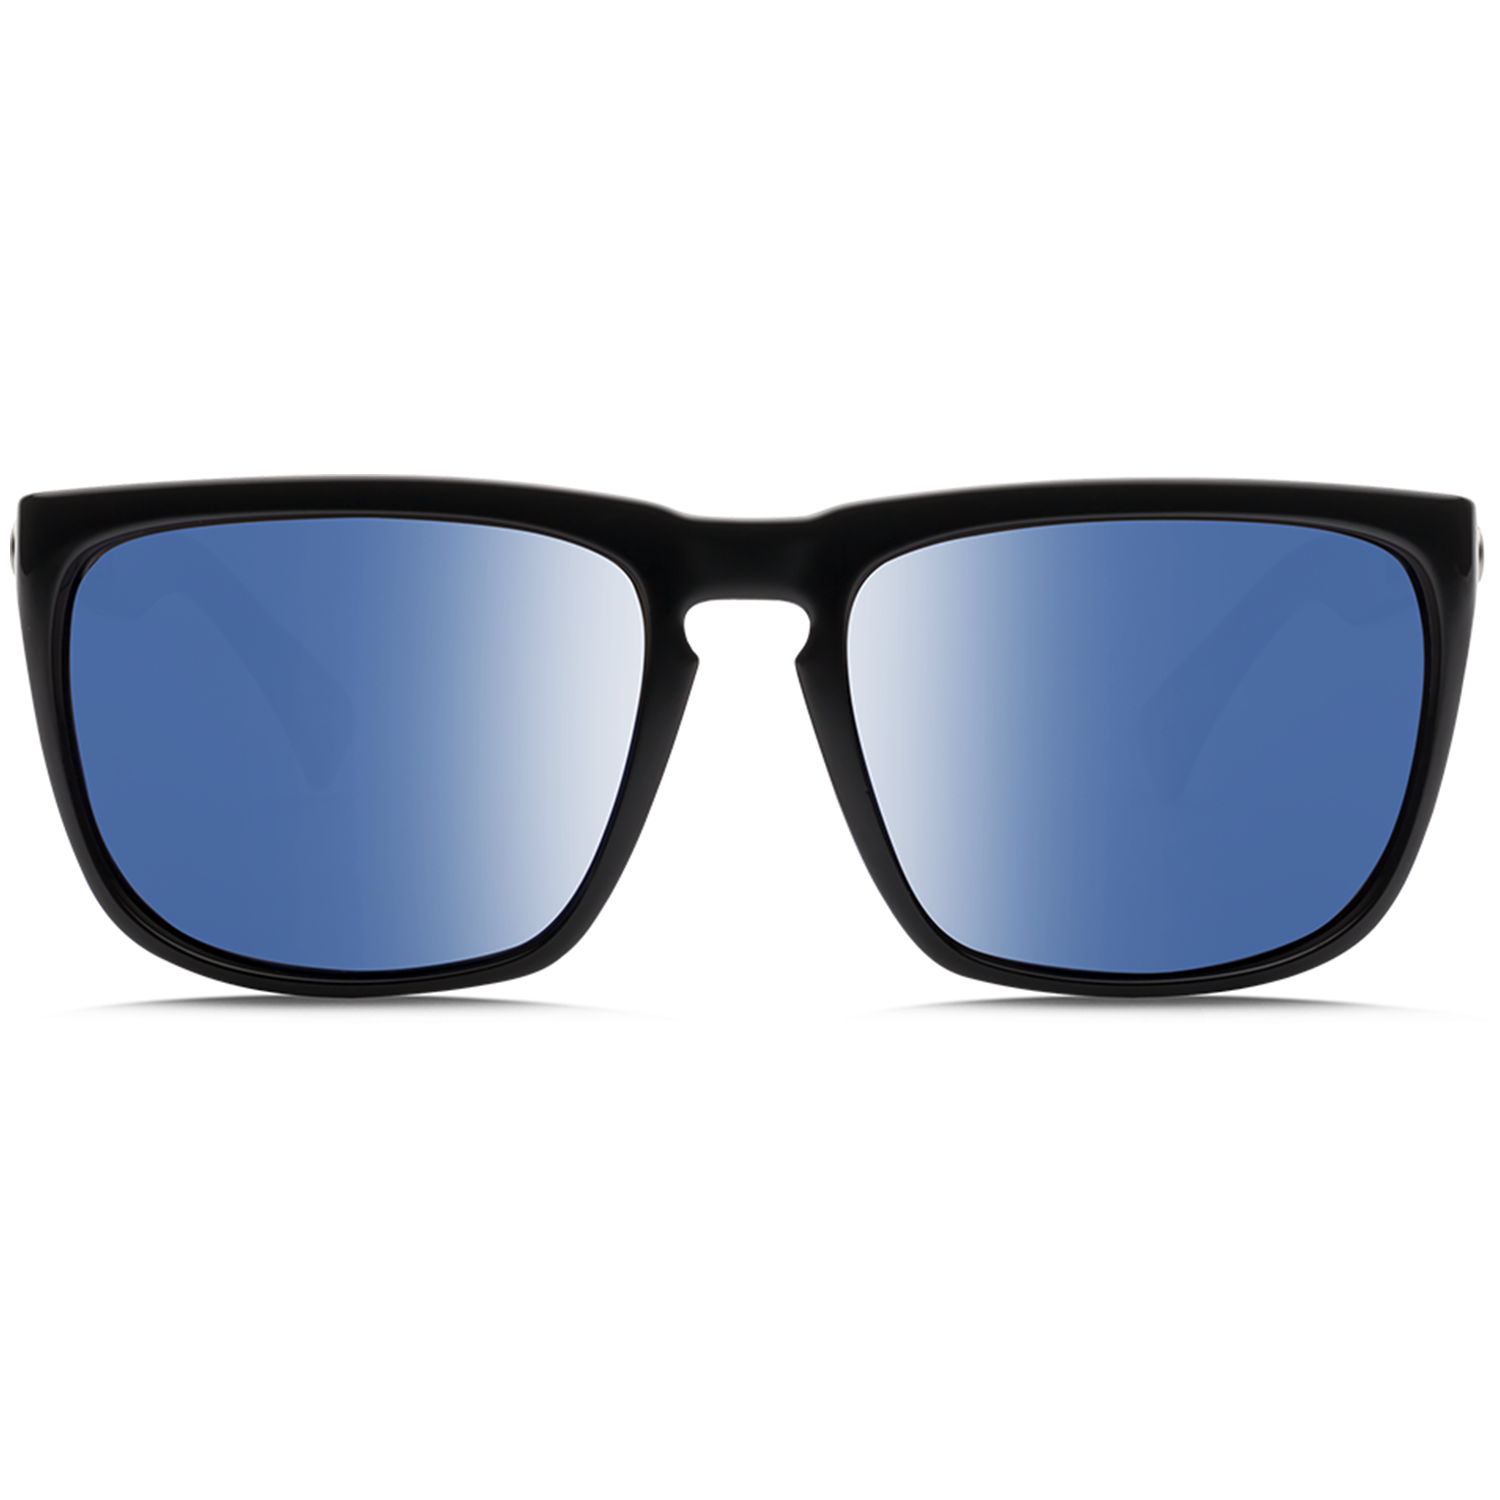 fccf244f17 Electric Knoxville Xl Sunglasses Polarized « One More Soul